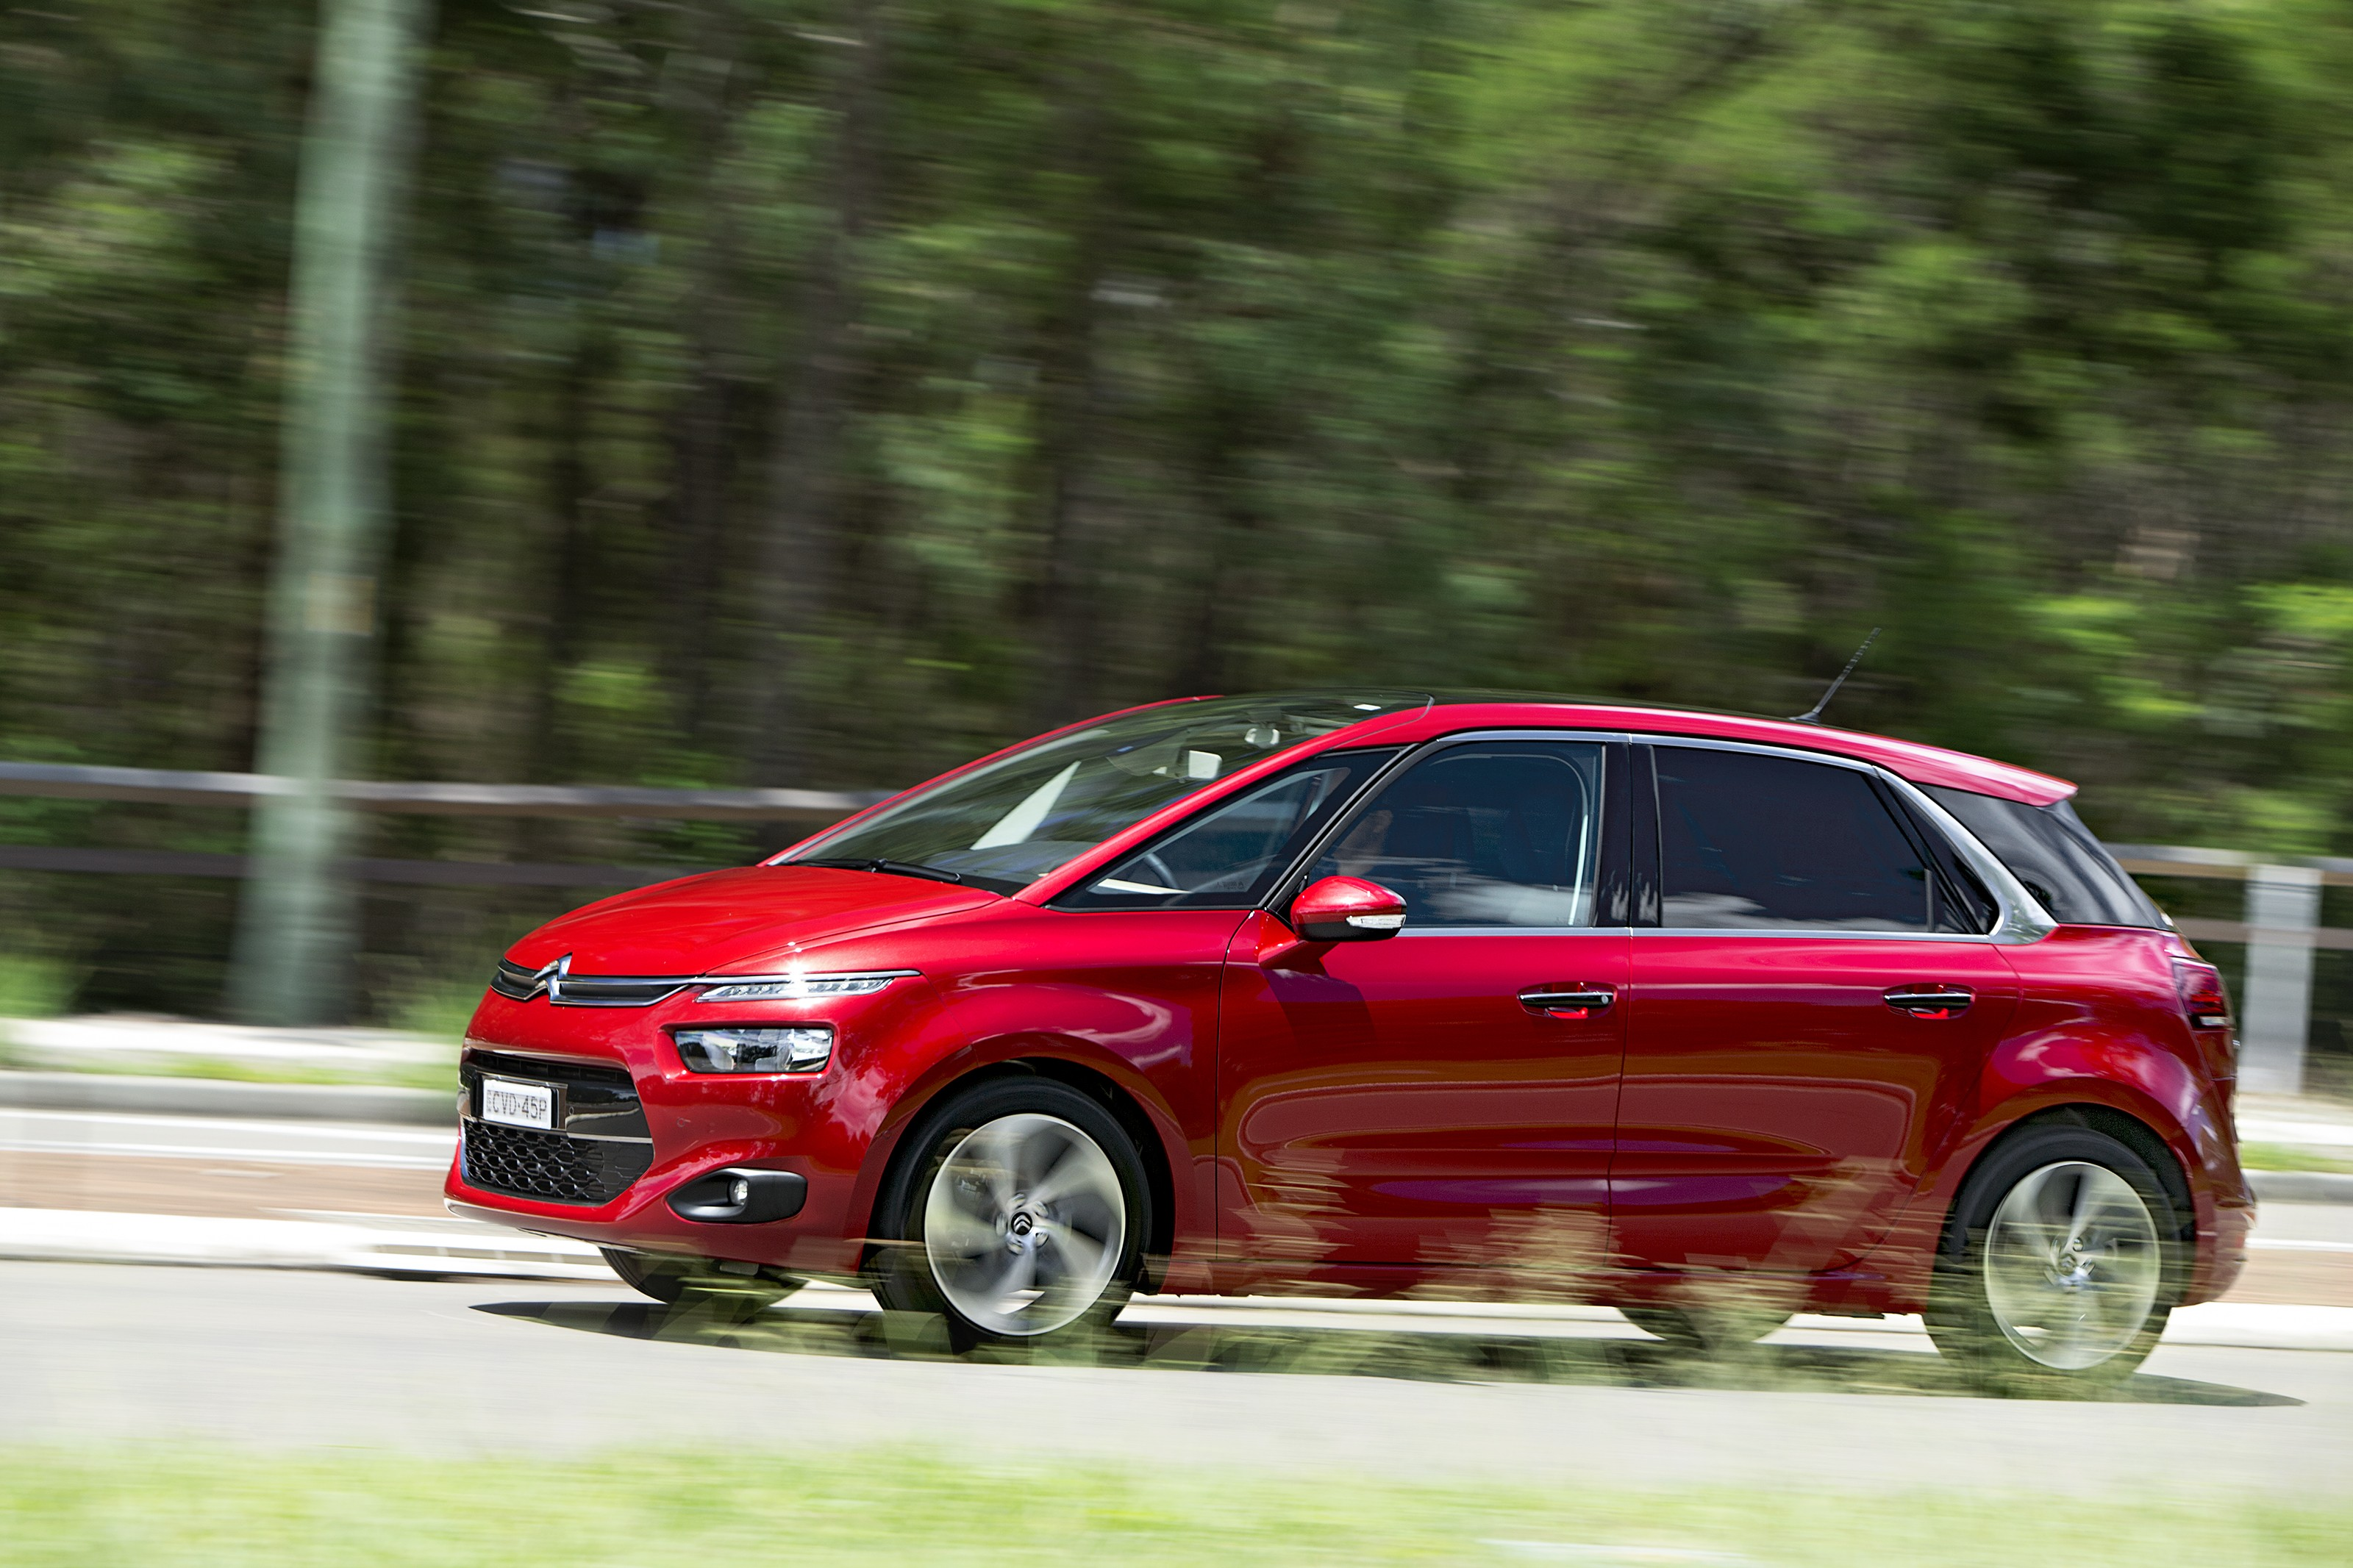 Citroen C4 Picasso best photo